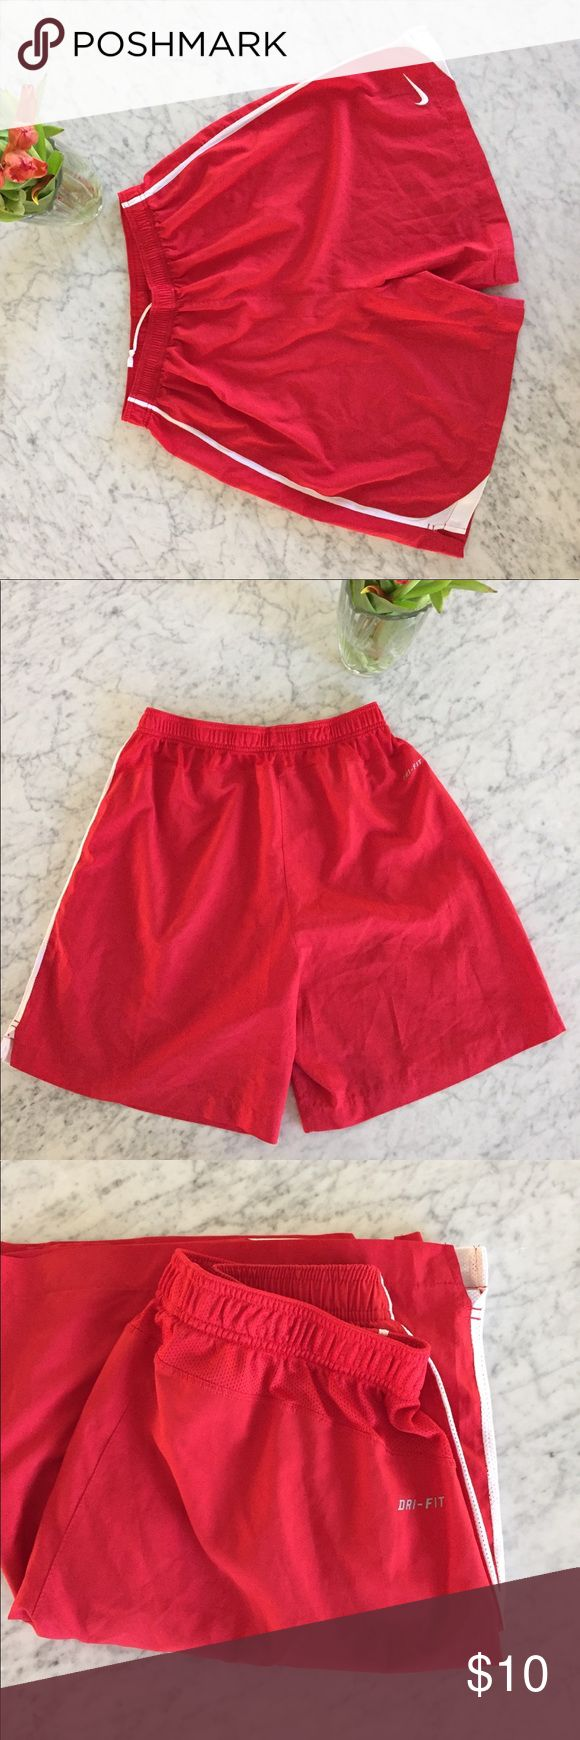 Men's Nike dri fit shorts Men's Nike drifit shorts in red; used; great color to make into a Halloween costume Nike Shorts Athletic